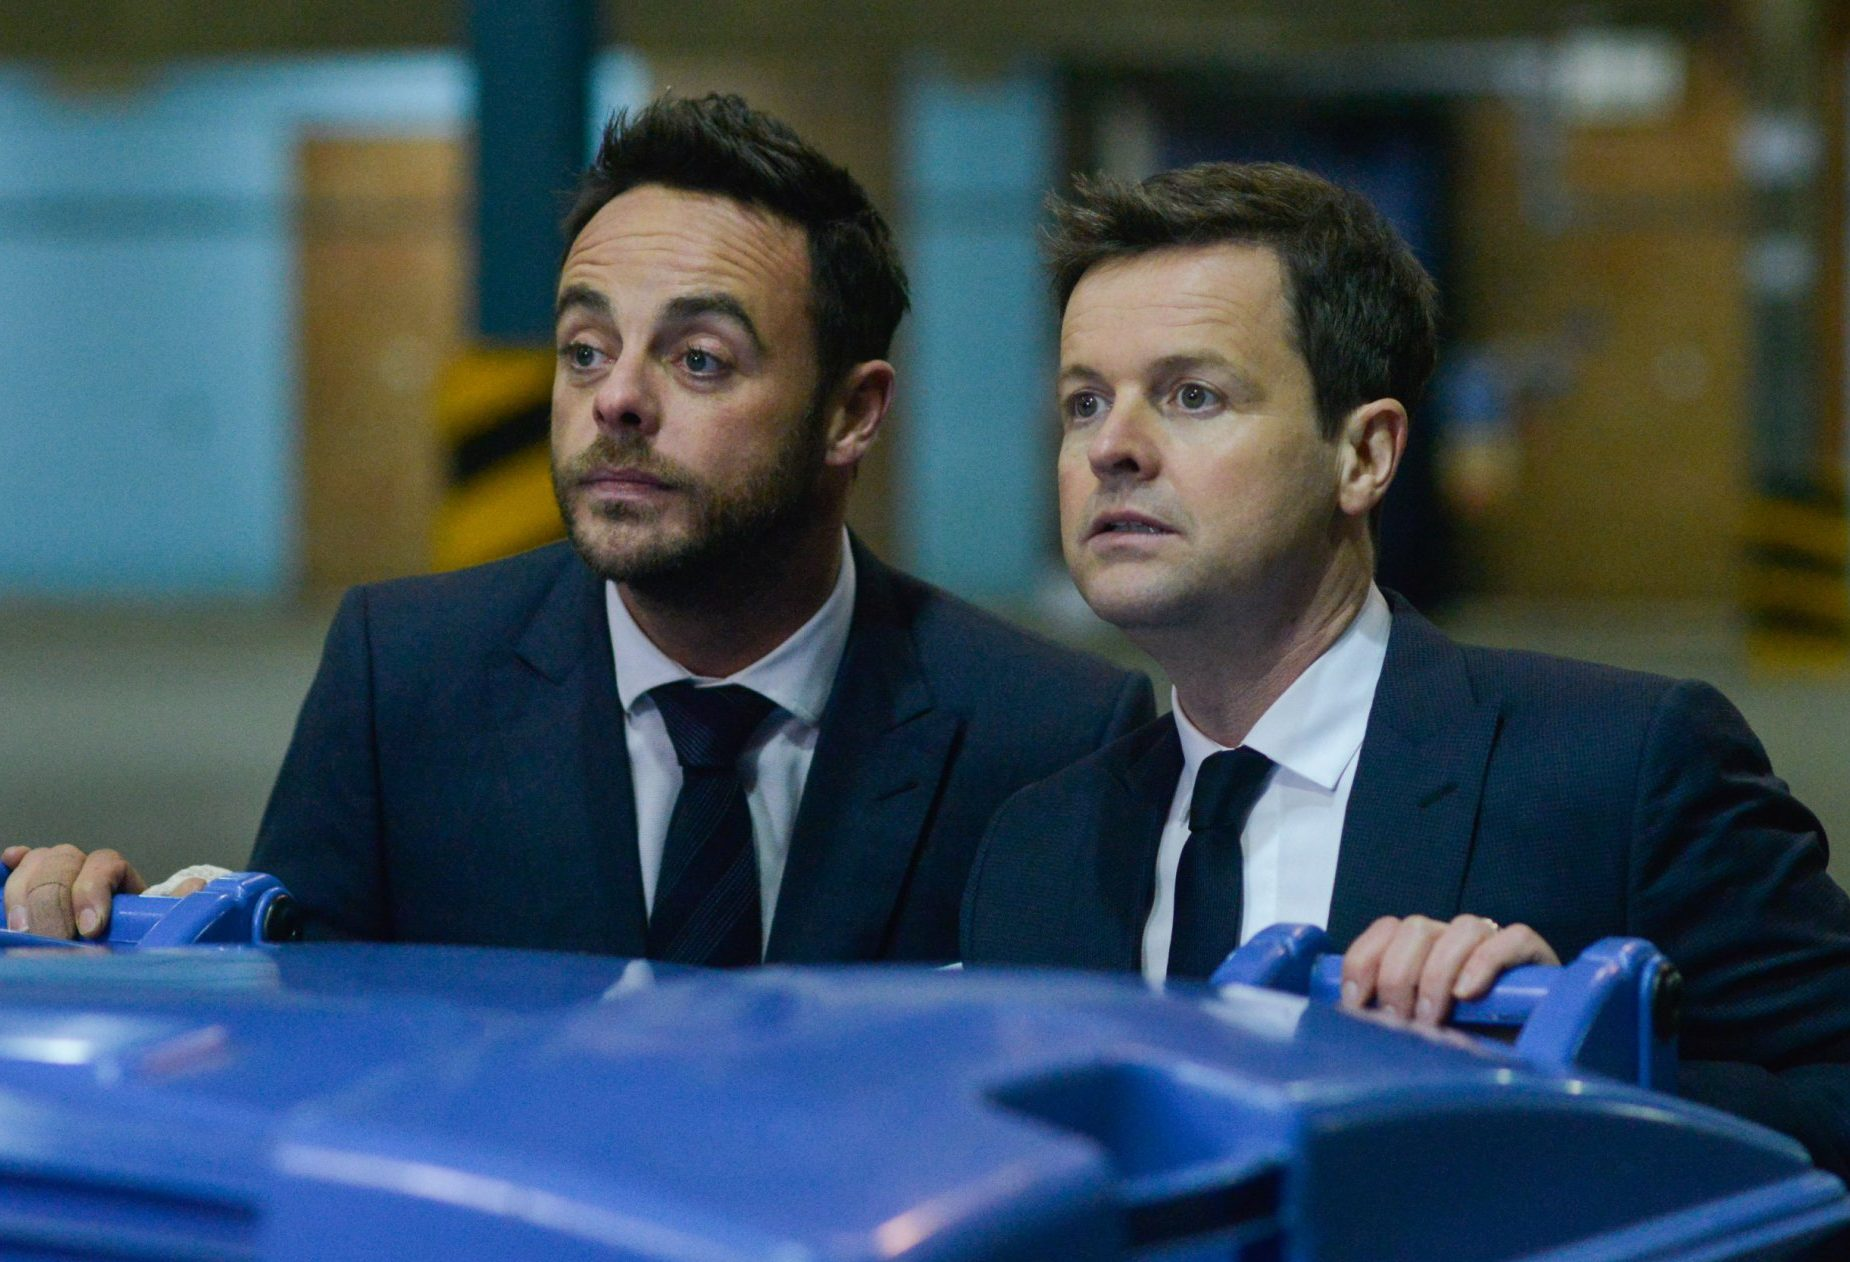 Editorial Use Only. No merchandising Mandatory Credit: Photo by ITV/REX/Shutterstock (9453216i) Saturday Knight Takeaway: Ep2: Anthony McPartlin and Declan Donnelly. 'Ant & Dec's Saturday Night Takeaway' TV Show, Series 15, Episode 3, UK - 10 Mar 2018 Anthony McPartlin and Declan Donnelly's Saturday Night Takeaway, is a British ITV variety show, presented by Anthony McPartlin and Declan Donnelly, both of whom also act as the show's executive producers, and broadcast on ITV since its premiere in 2002.